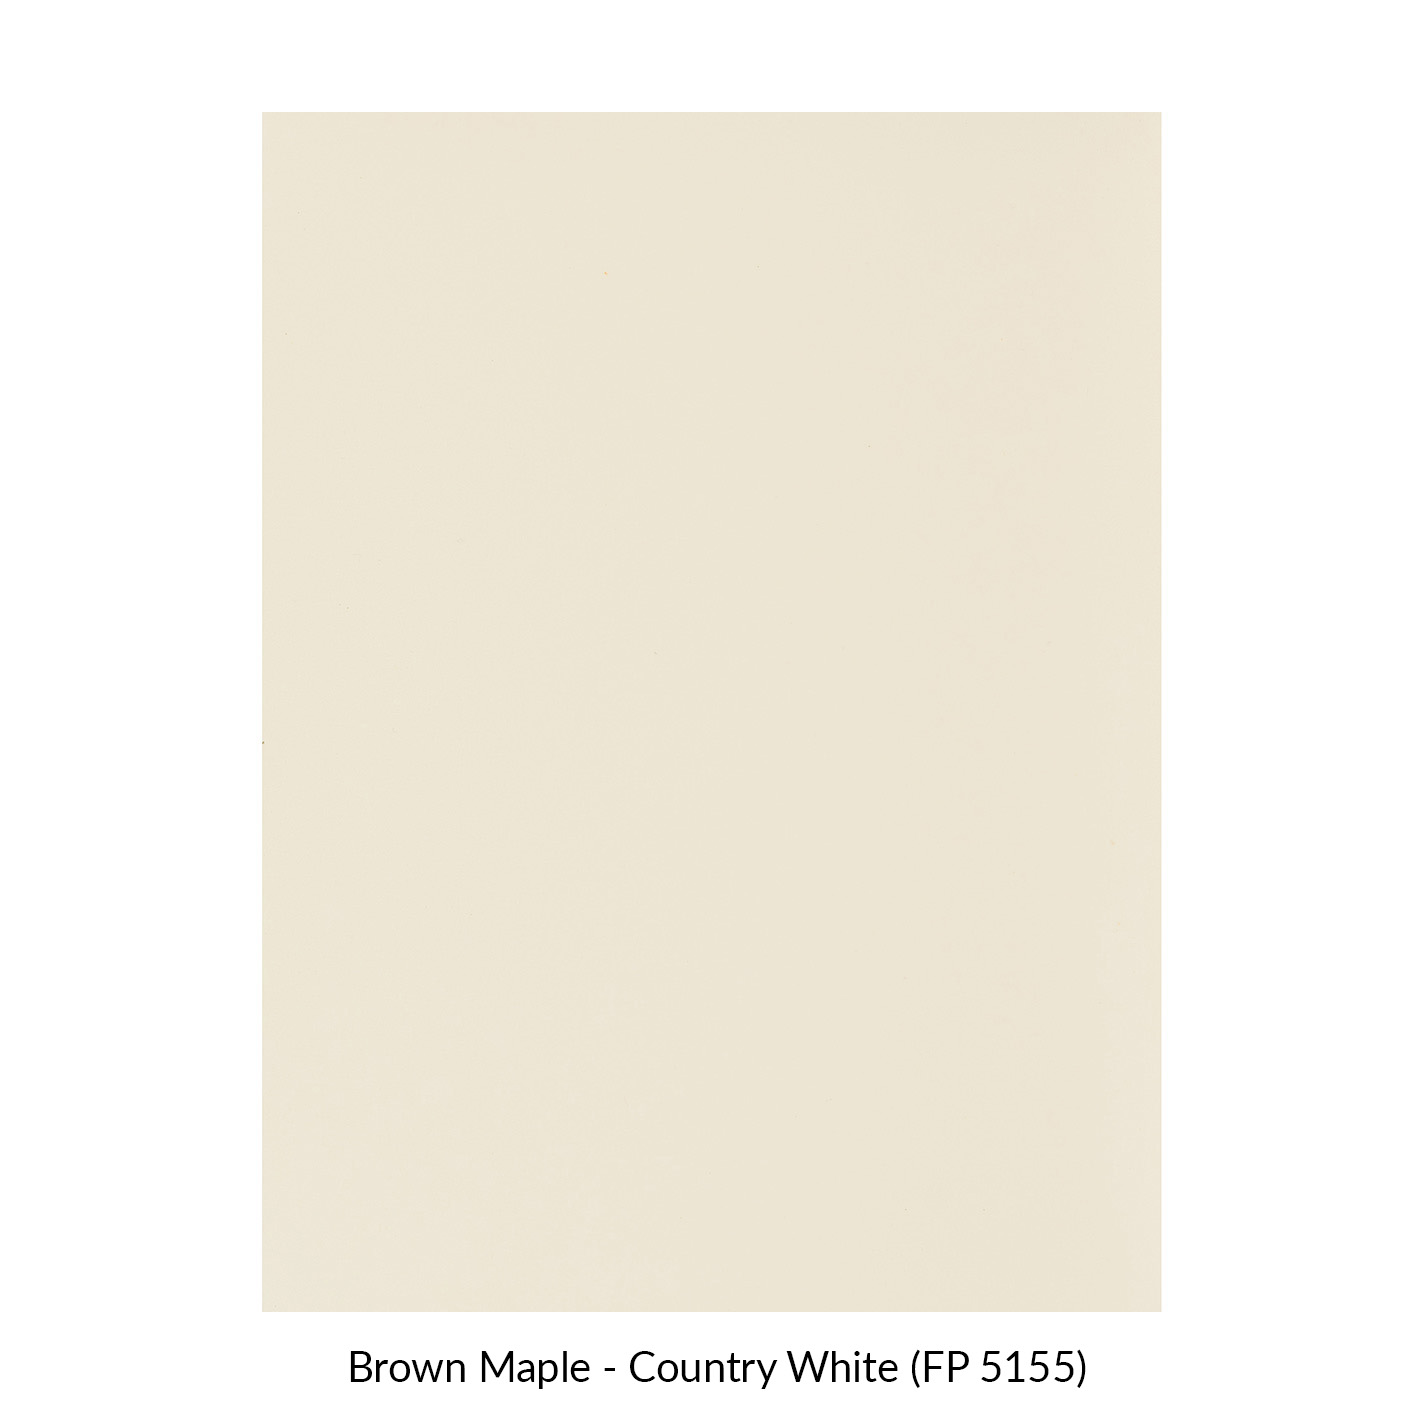 spectrum-brown-maple-country-white-fpc-7900.jpg